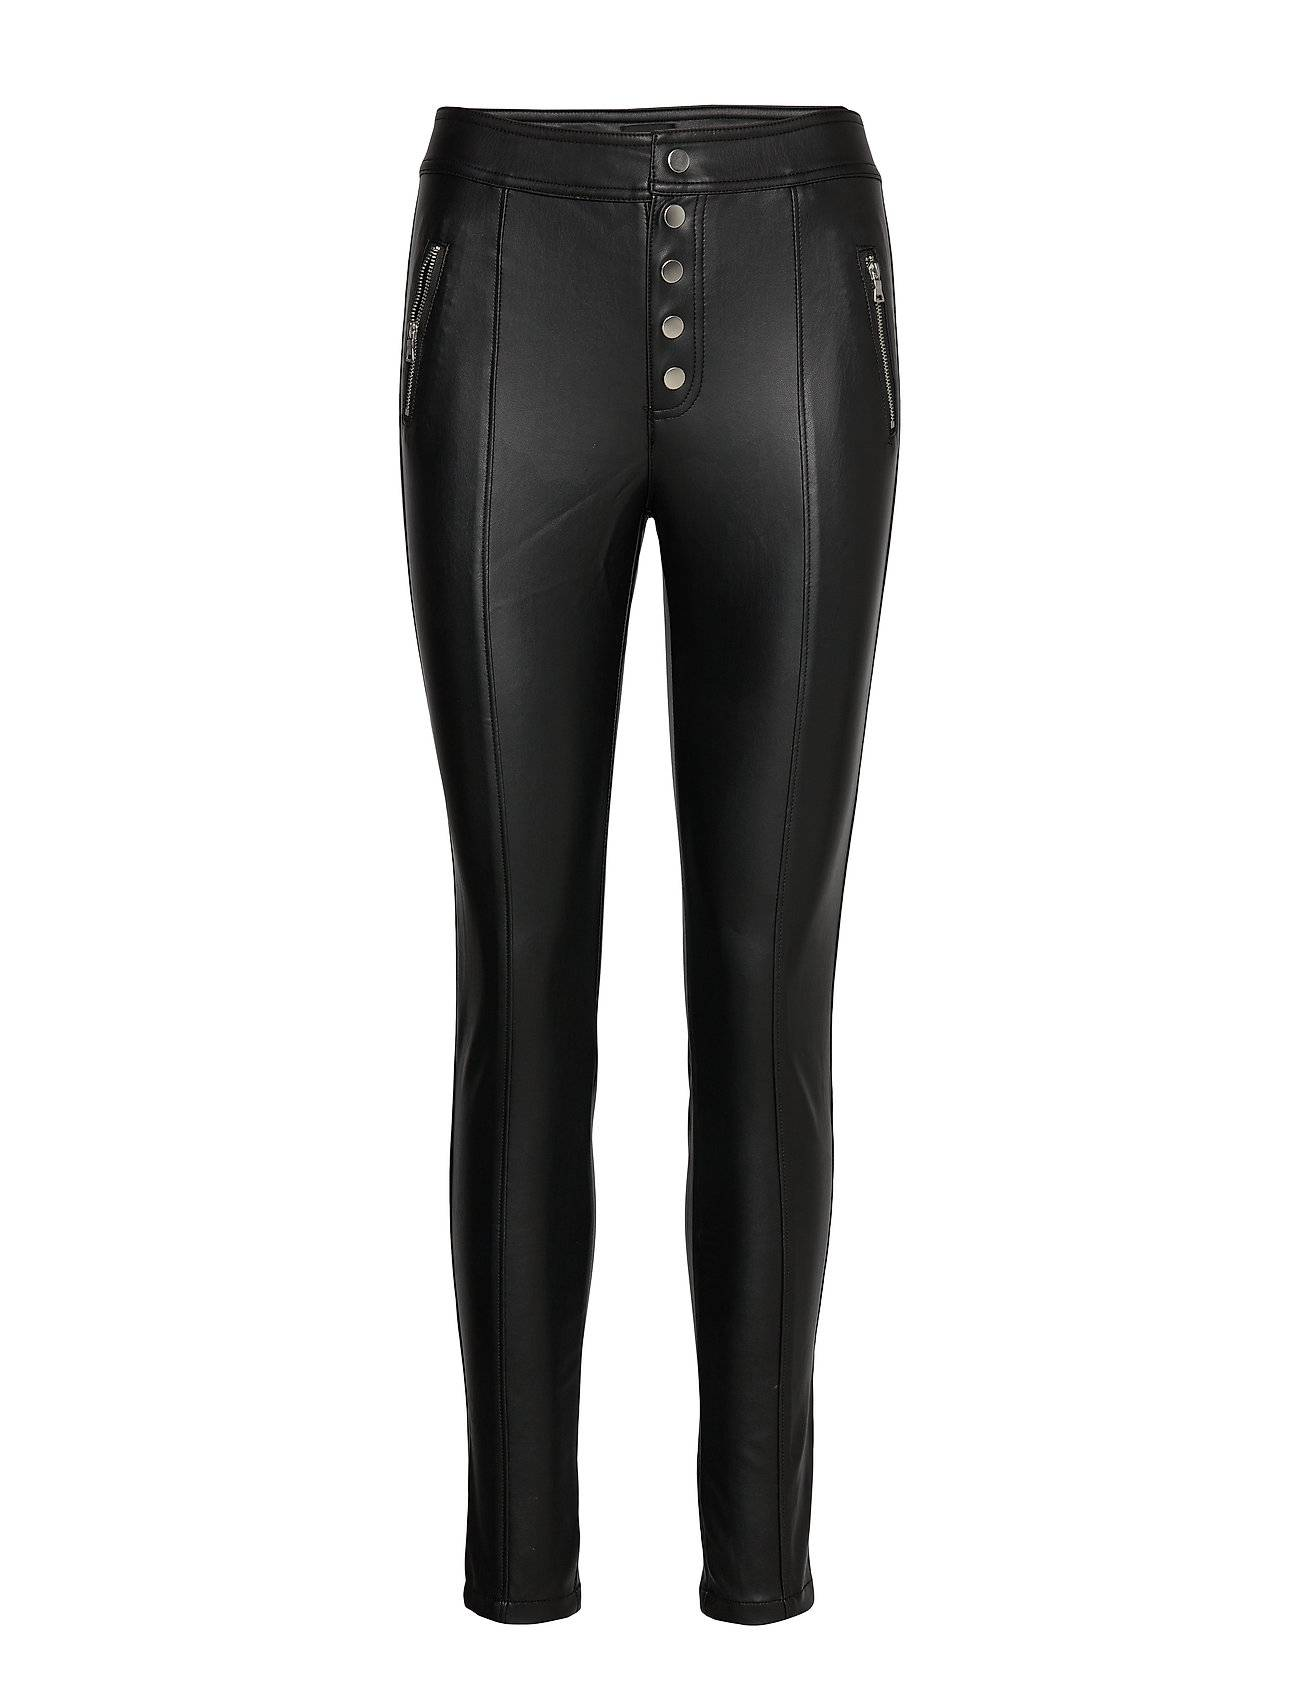 Image of ONLY Onlsigga Button Pu Pant Leather Leggings/Housut Musta ONLY